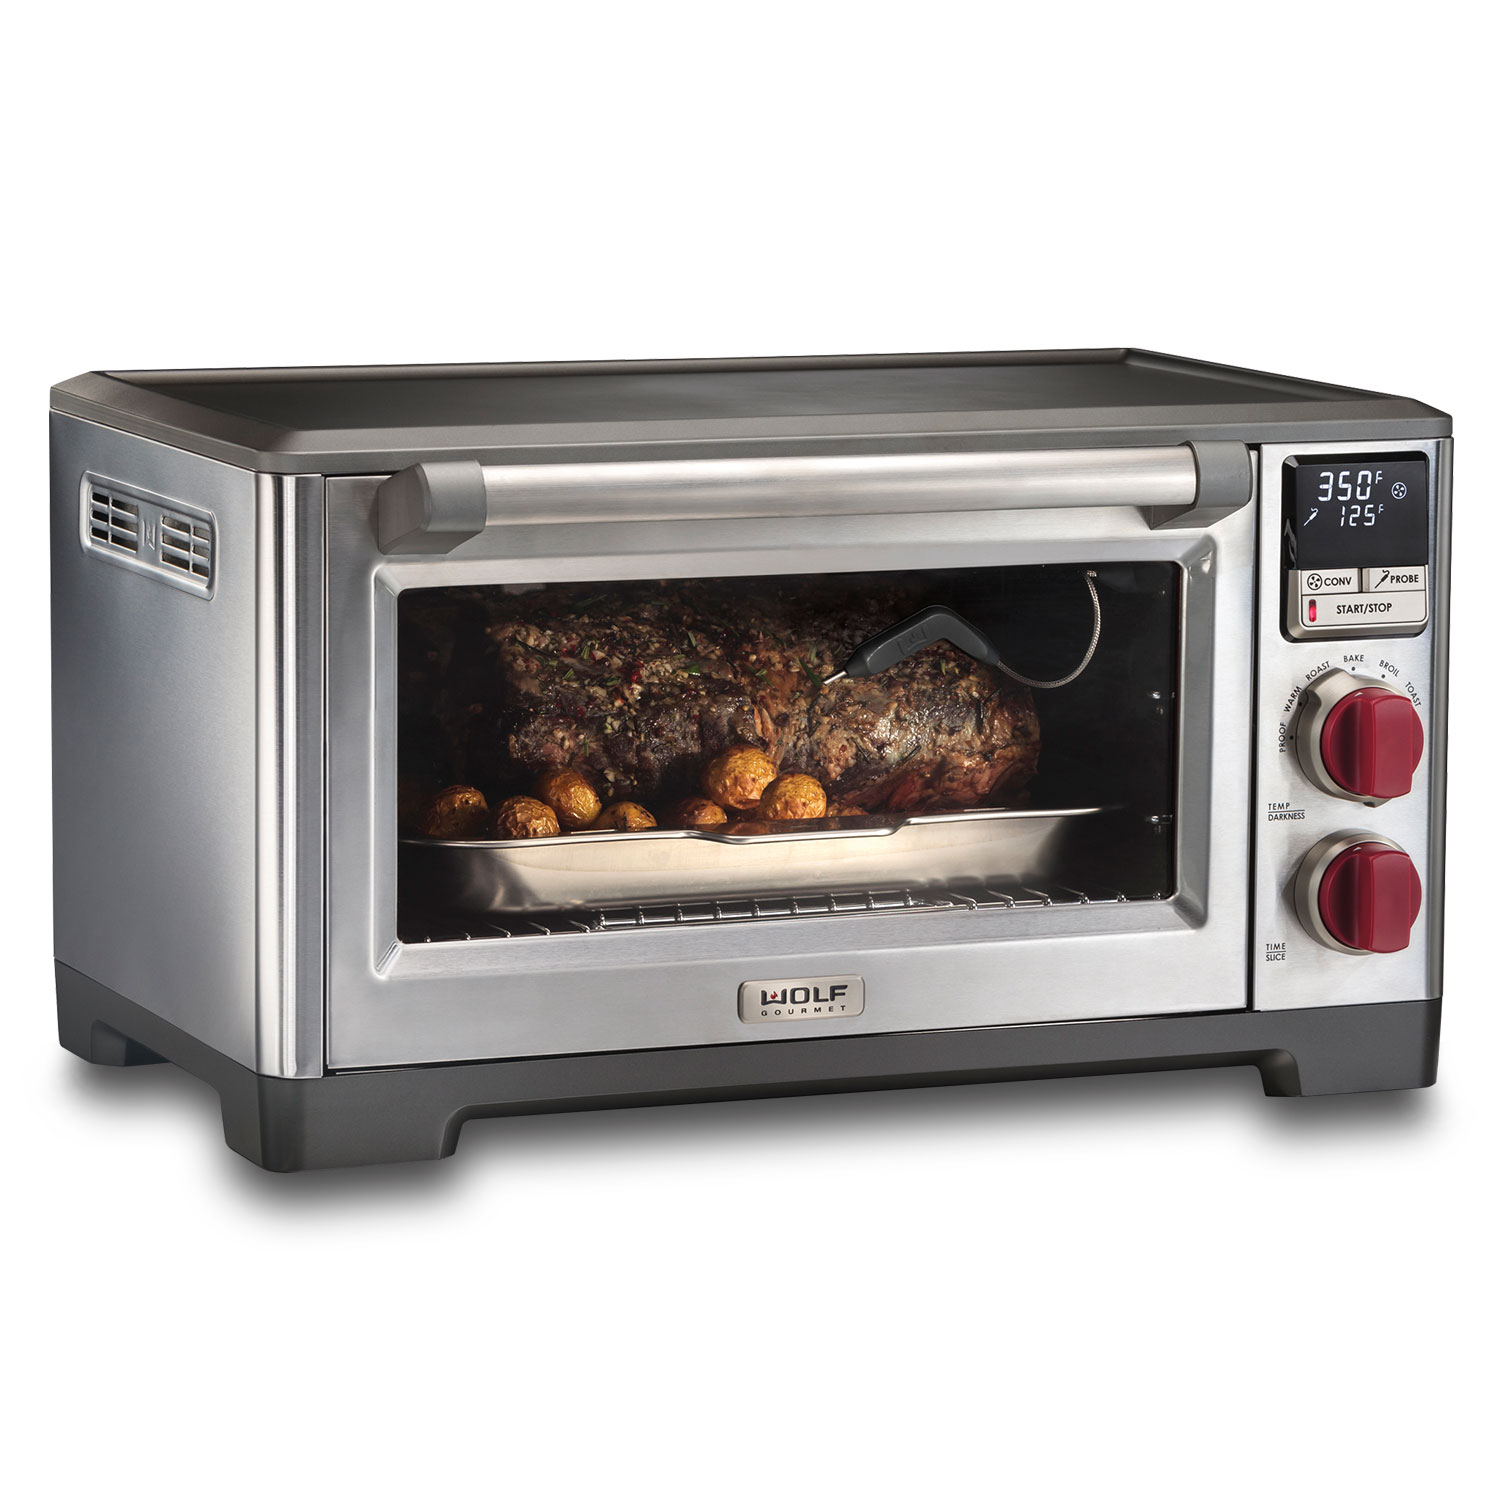 Best Countertop Ovens For Baking Countertop Oven Wolf Gourmet Countertop Appliances